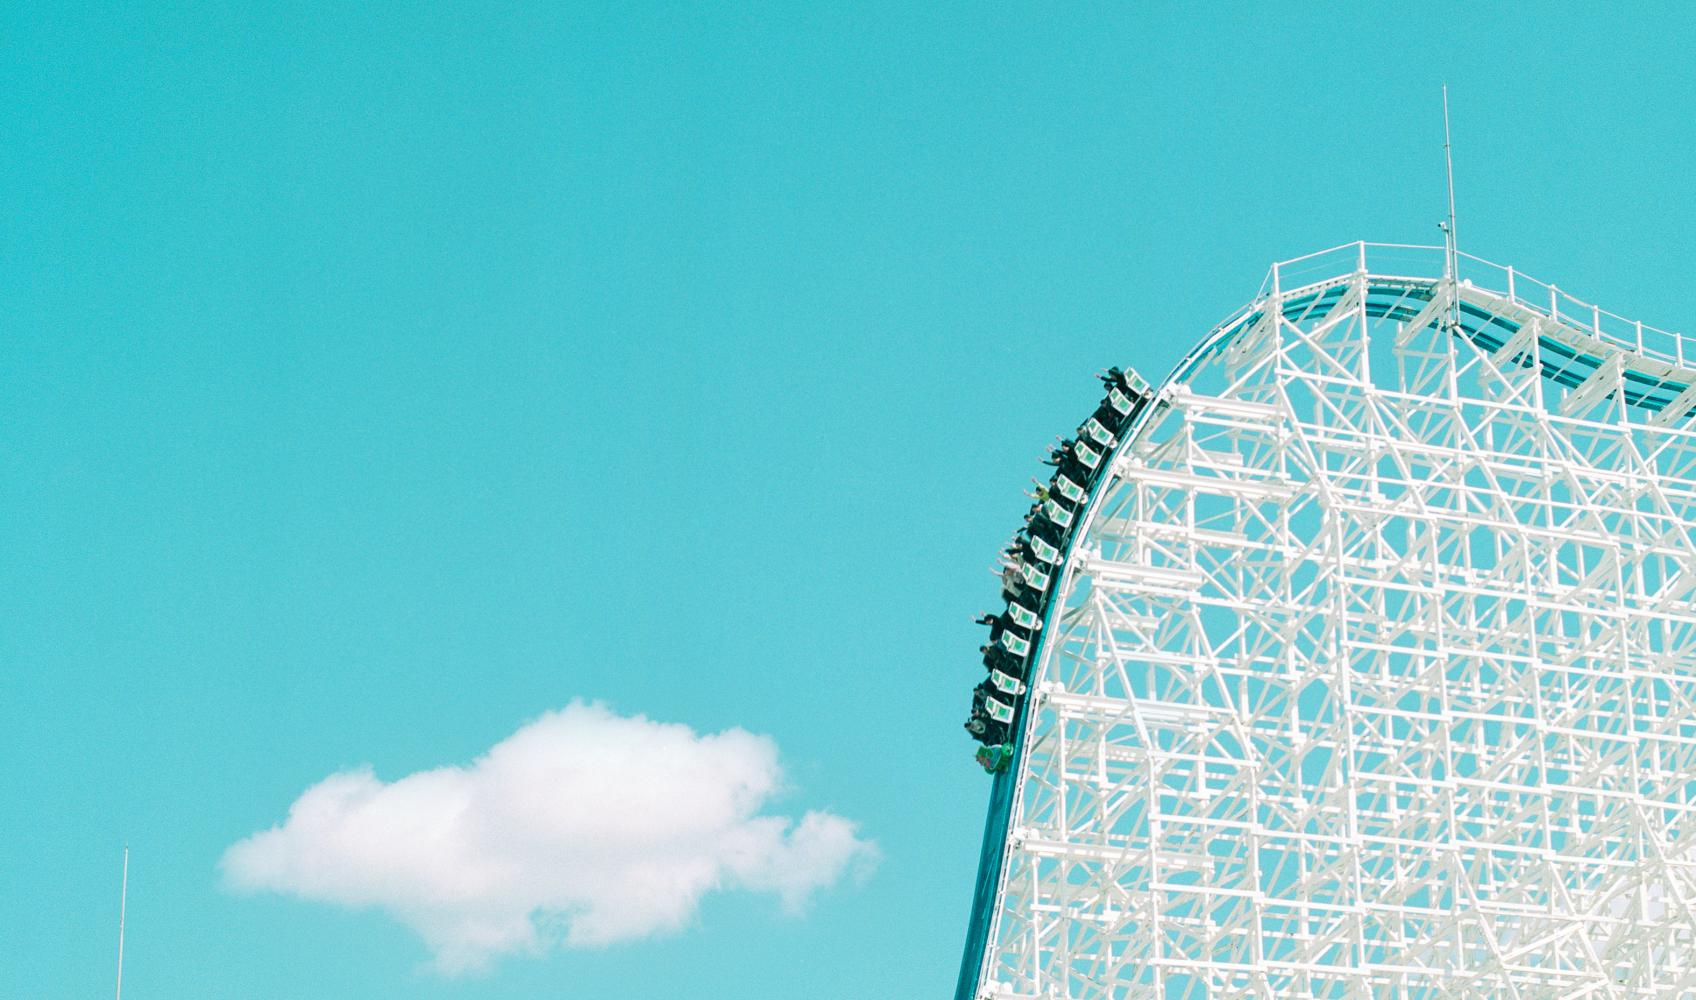 """The White Cyclone at Nagashima Spa Land"", Detail, Kuwana, Japan"